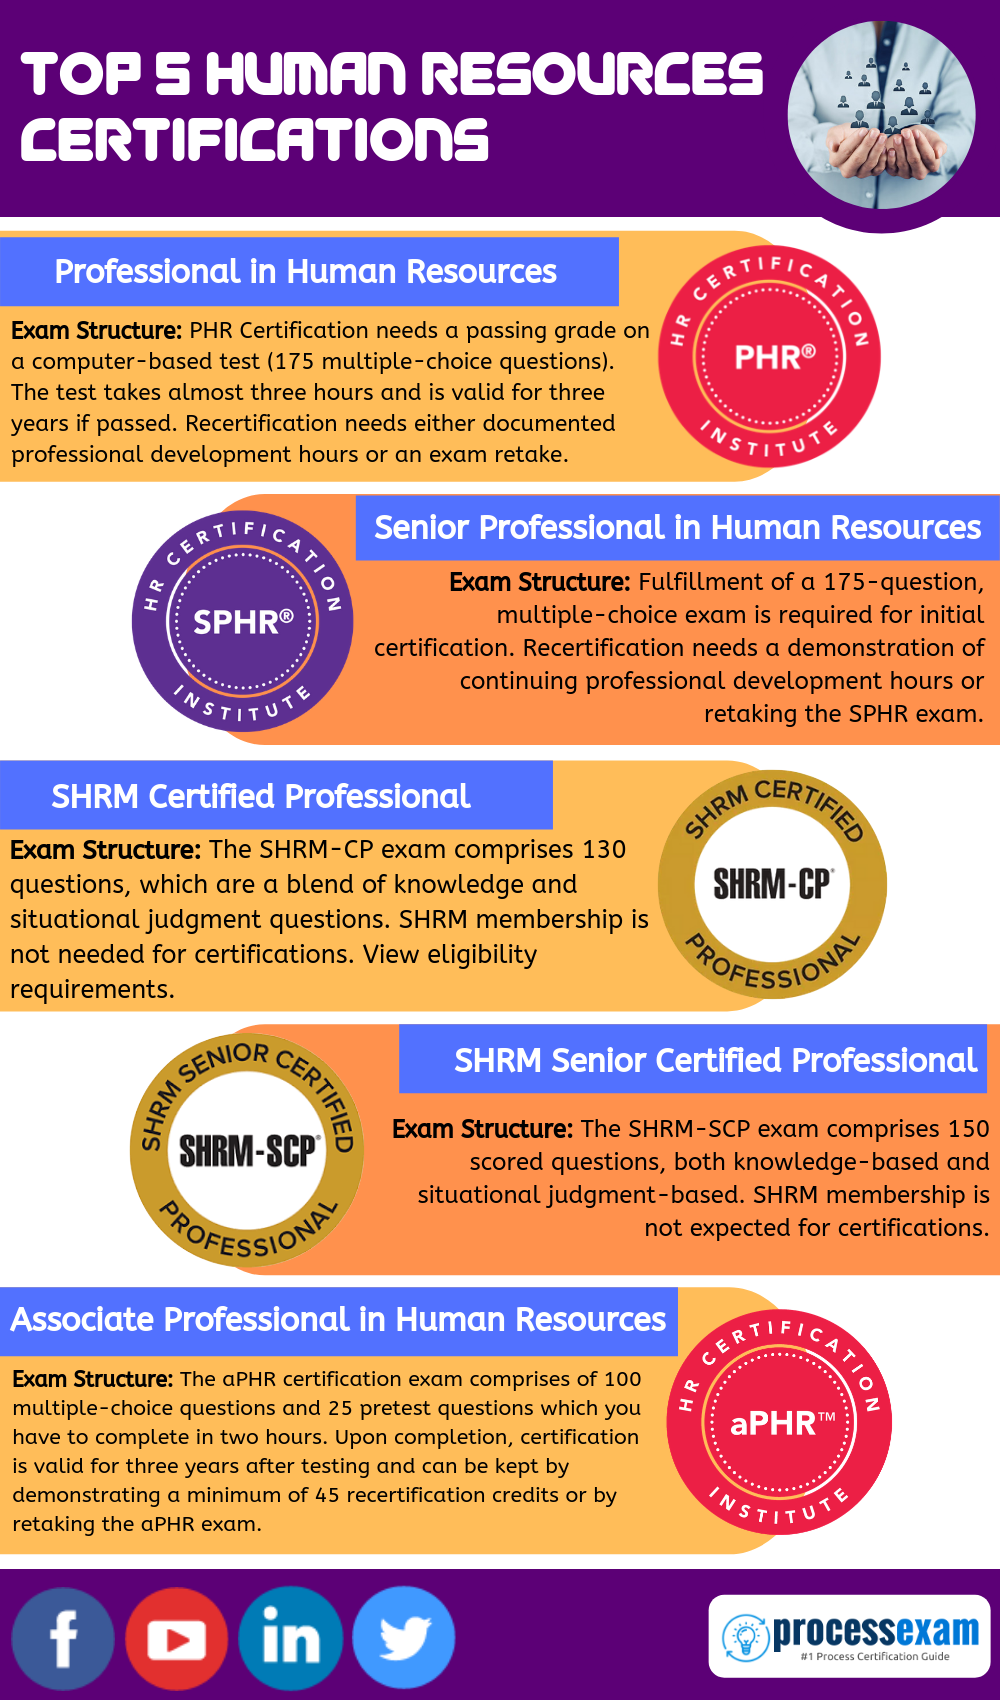 Infographic Top 5 Human Resources Certifications Https Www